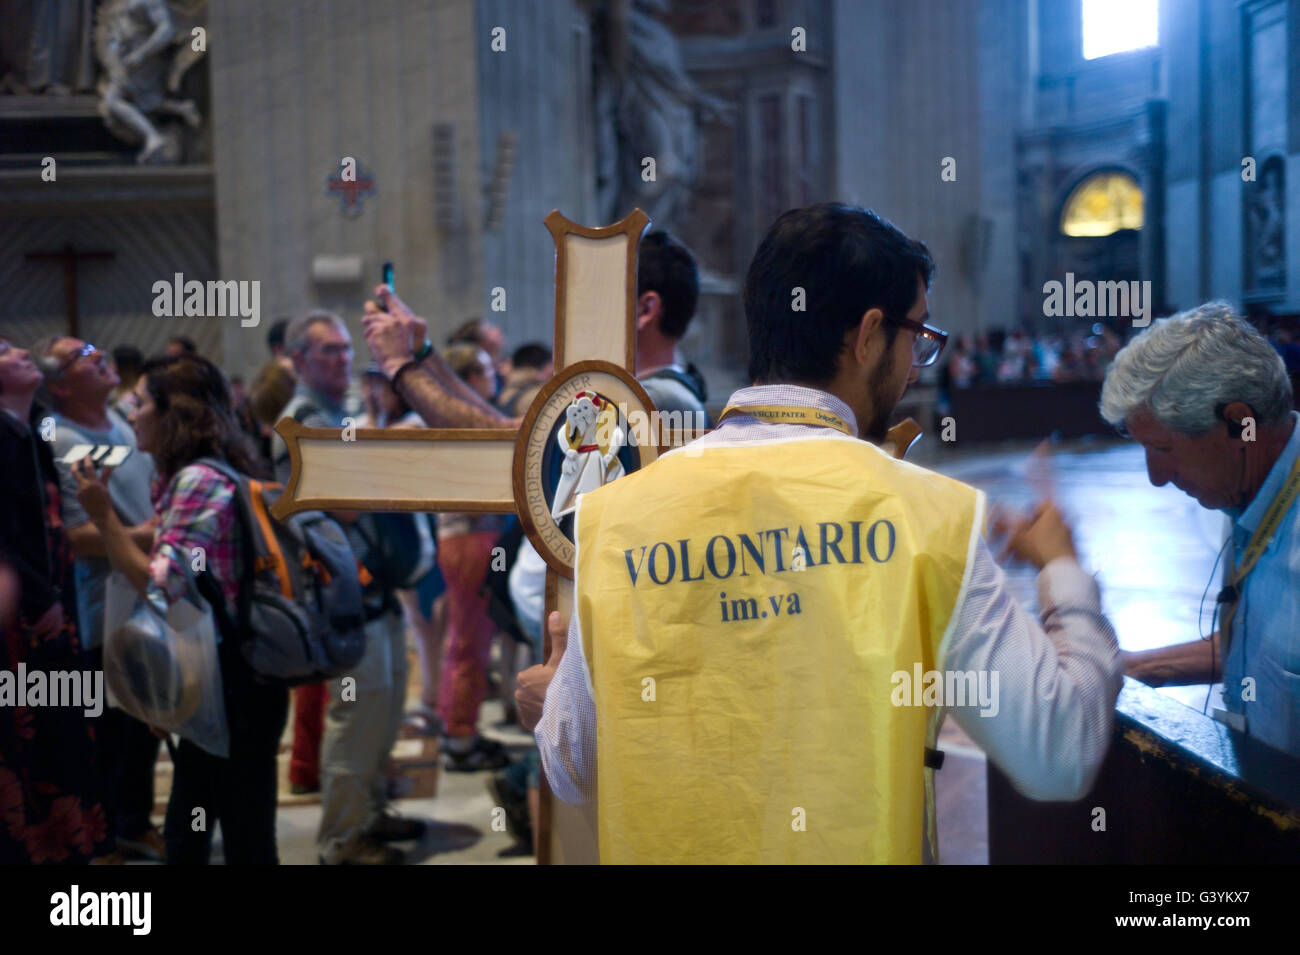 A volunteer inside St Peter's Basilica in the Vatican Rome Itlay - Stock Image